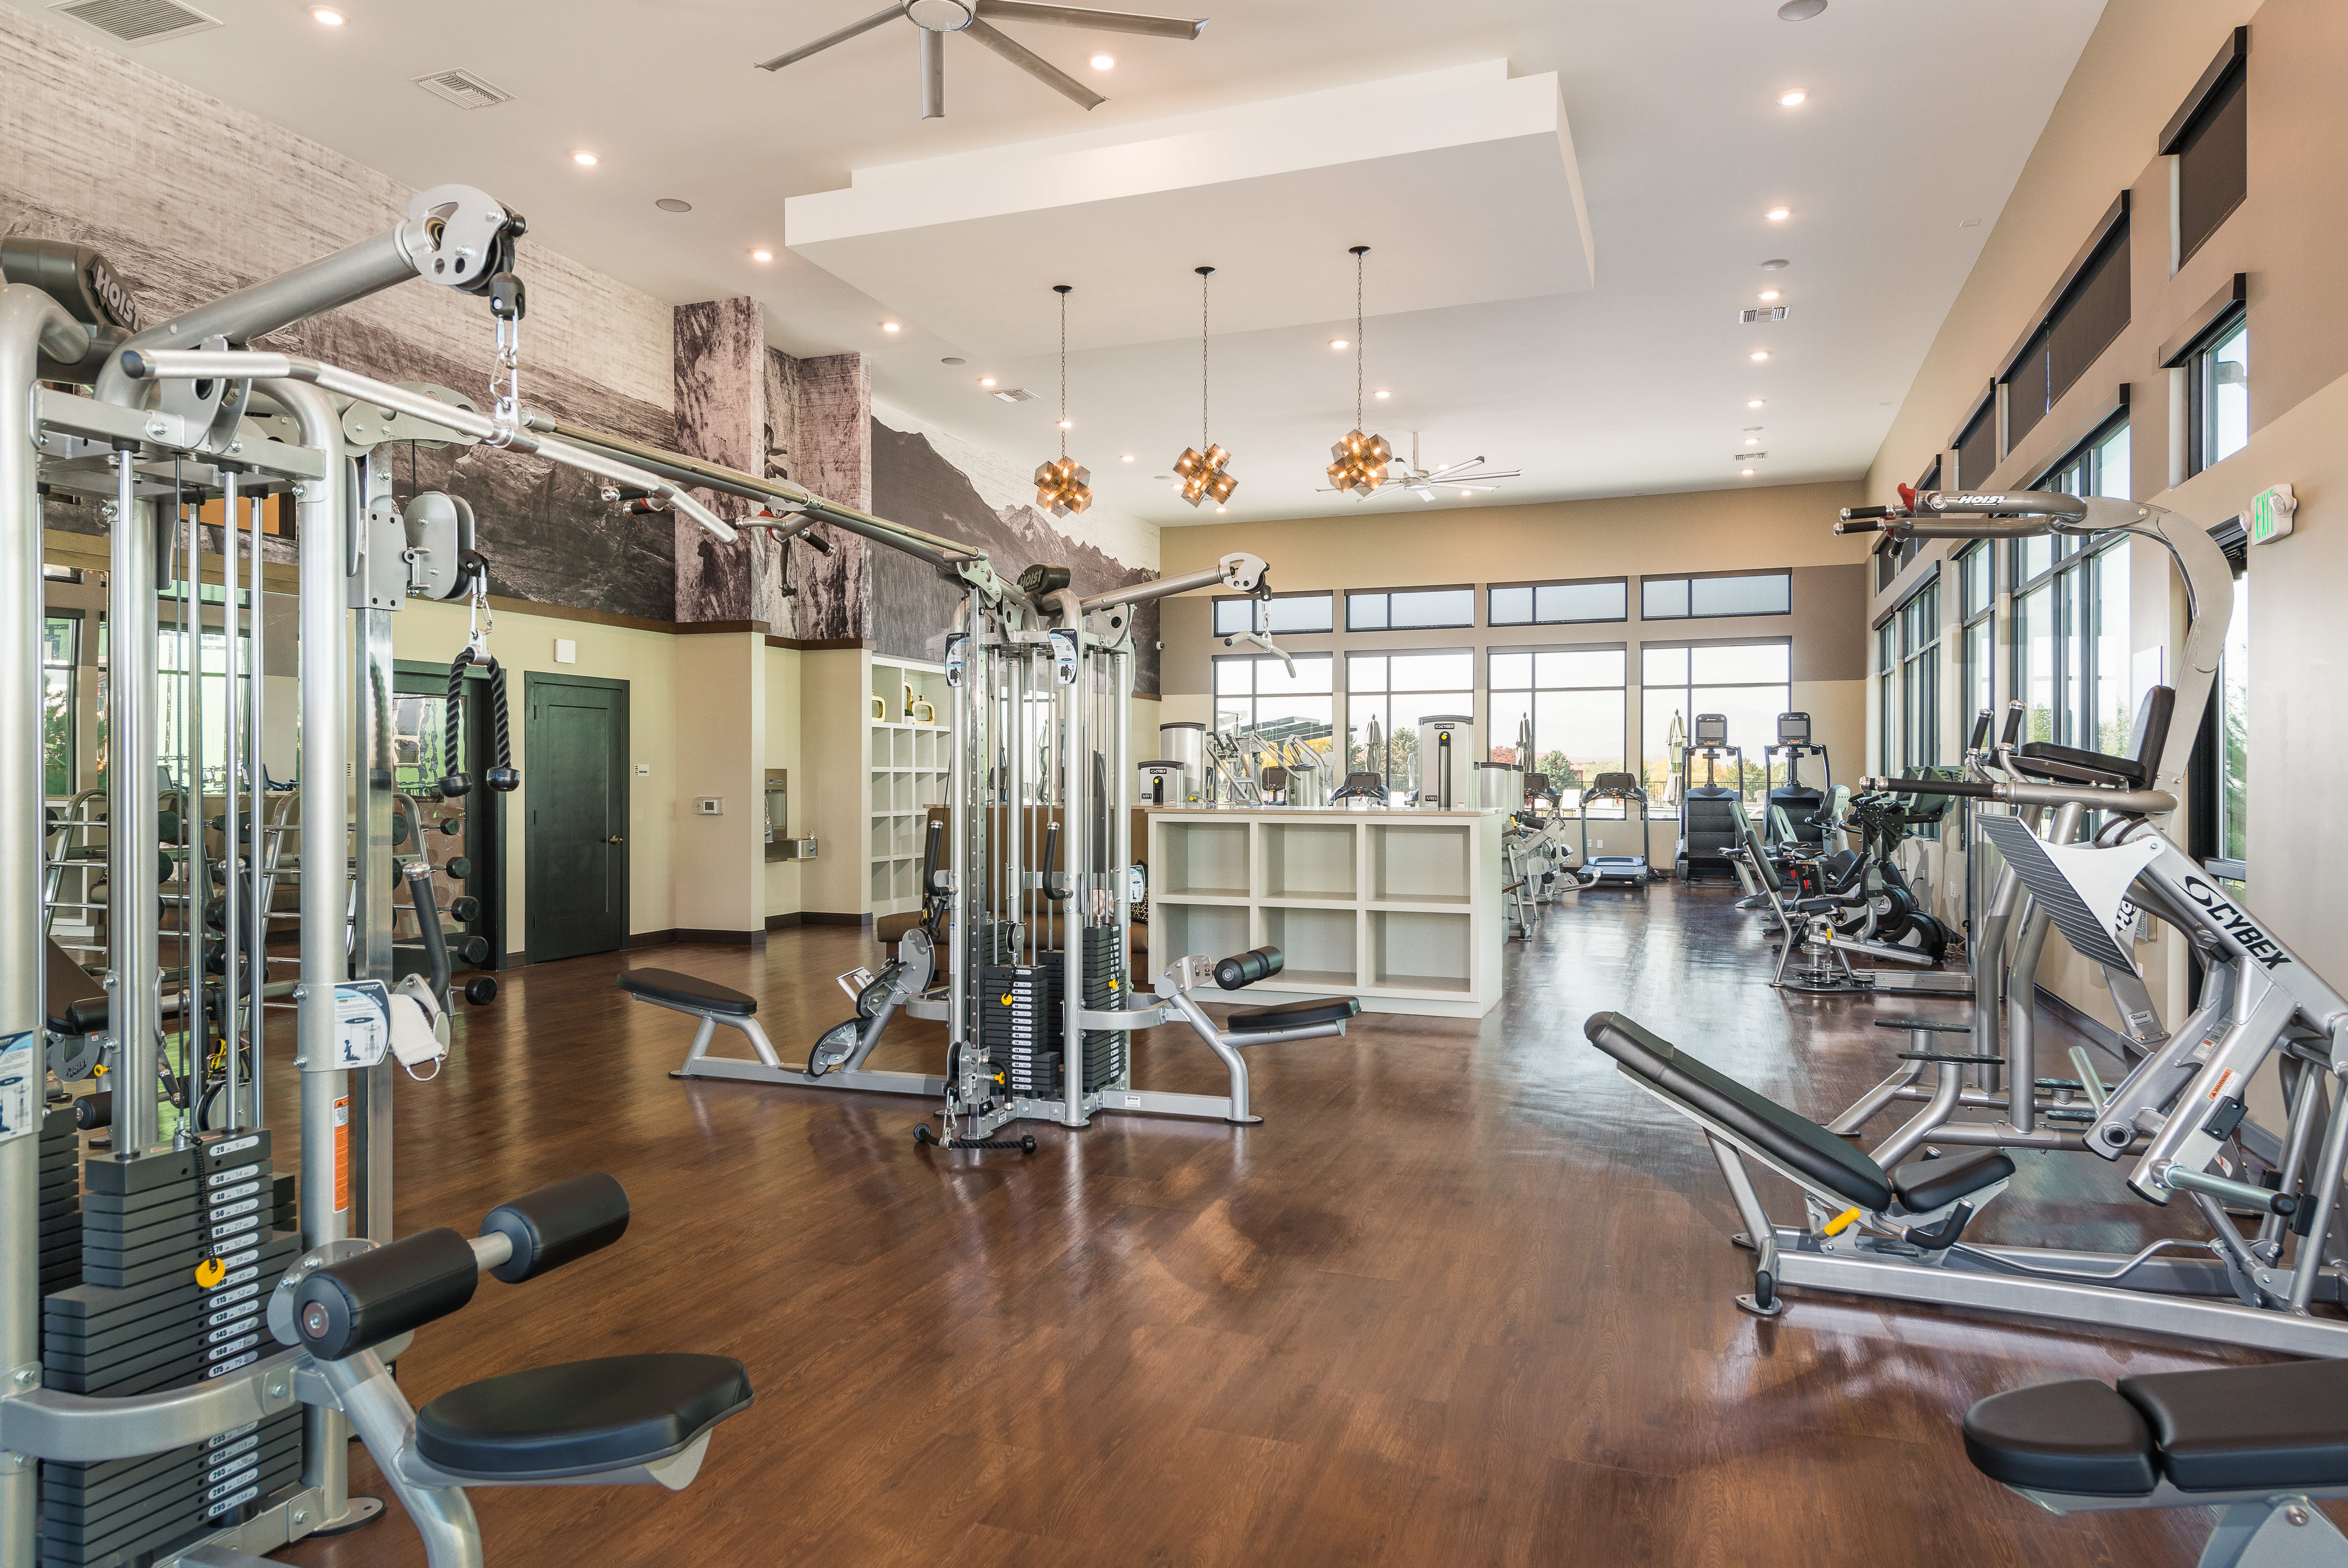 State of the art fitness center is just one of the amenities offered at Solana Lucent Station